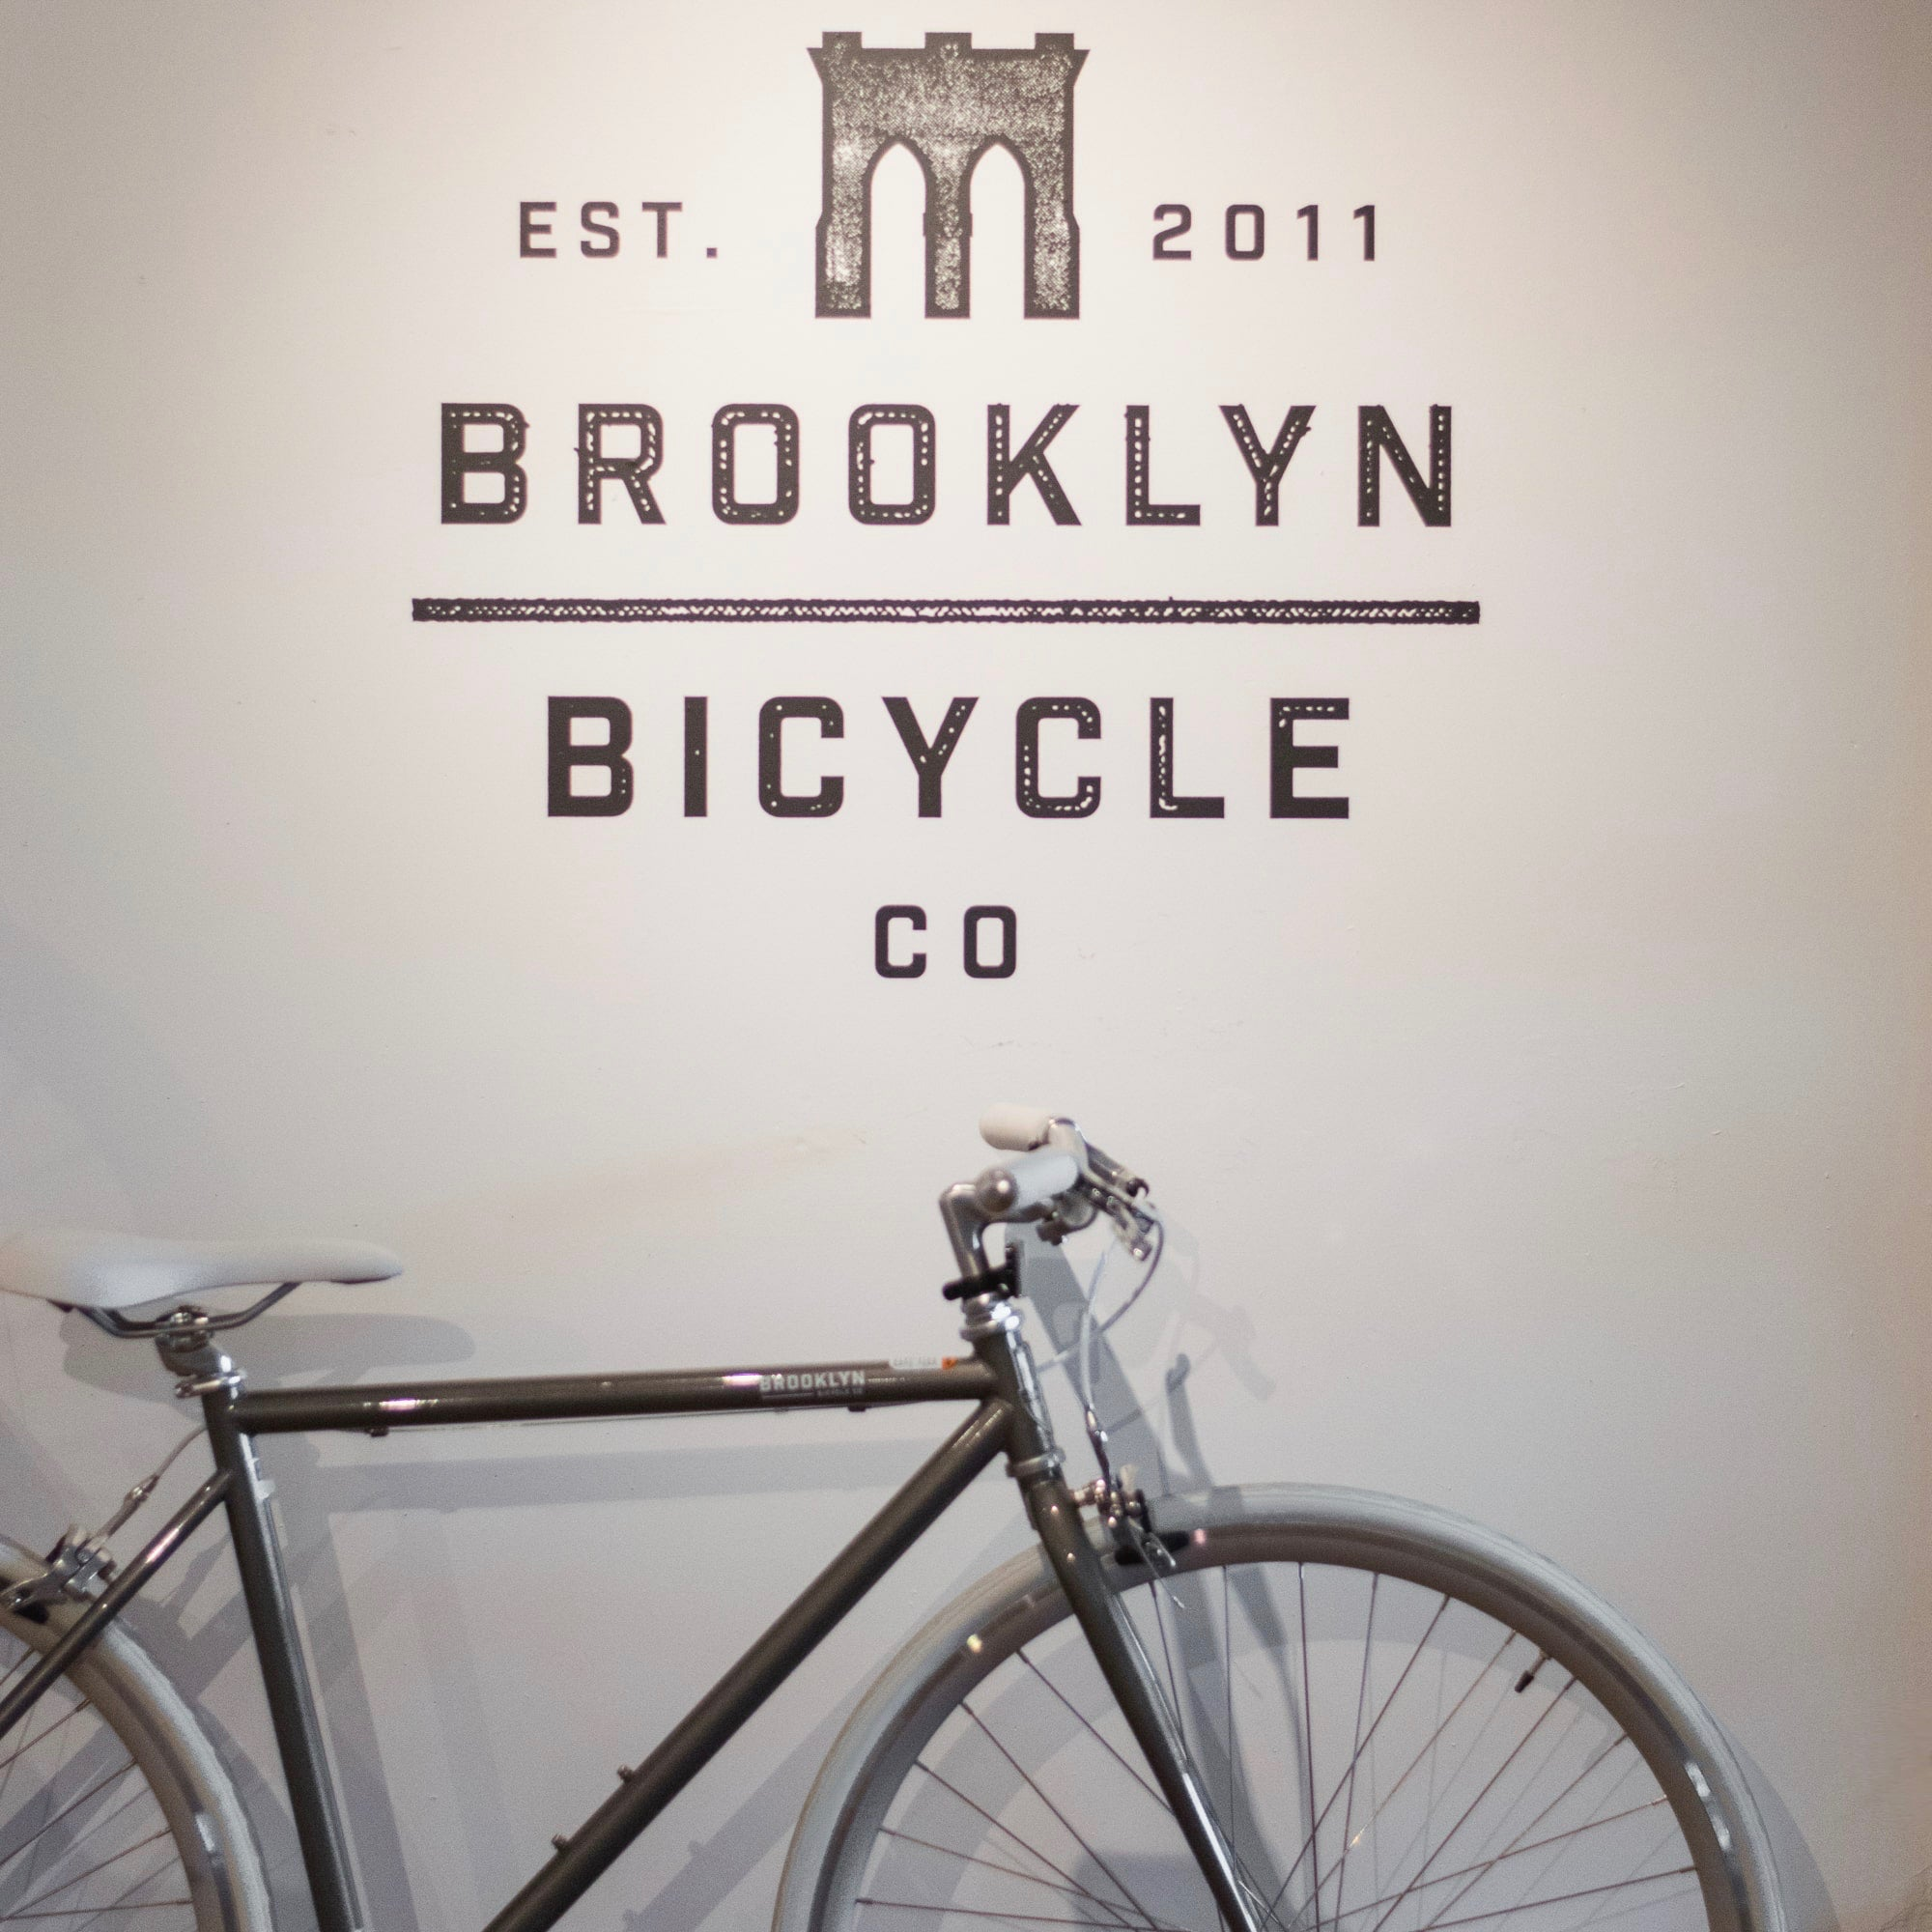 A grey bicycle by Brooklyn Bicycle Co. in their showroom against a wall with their logo.